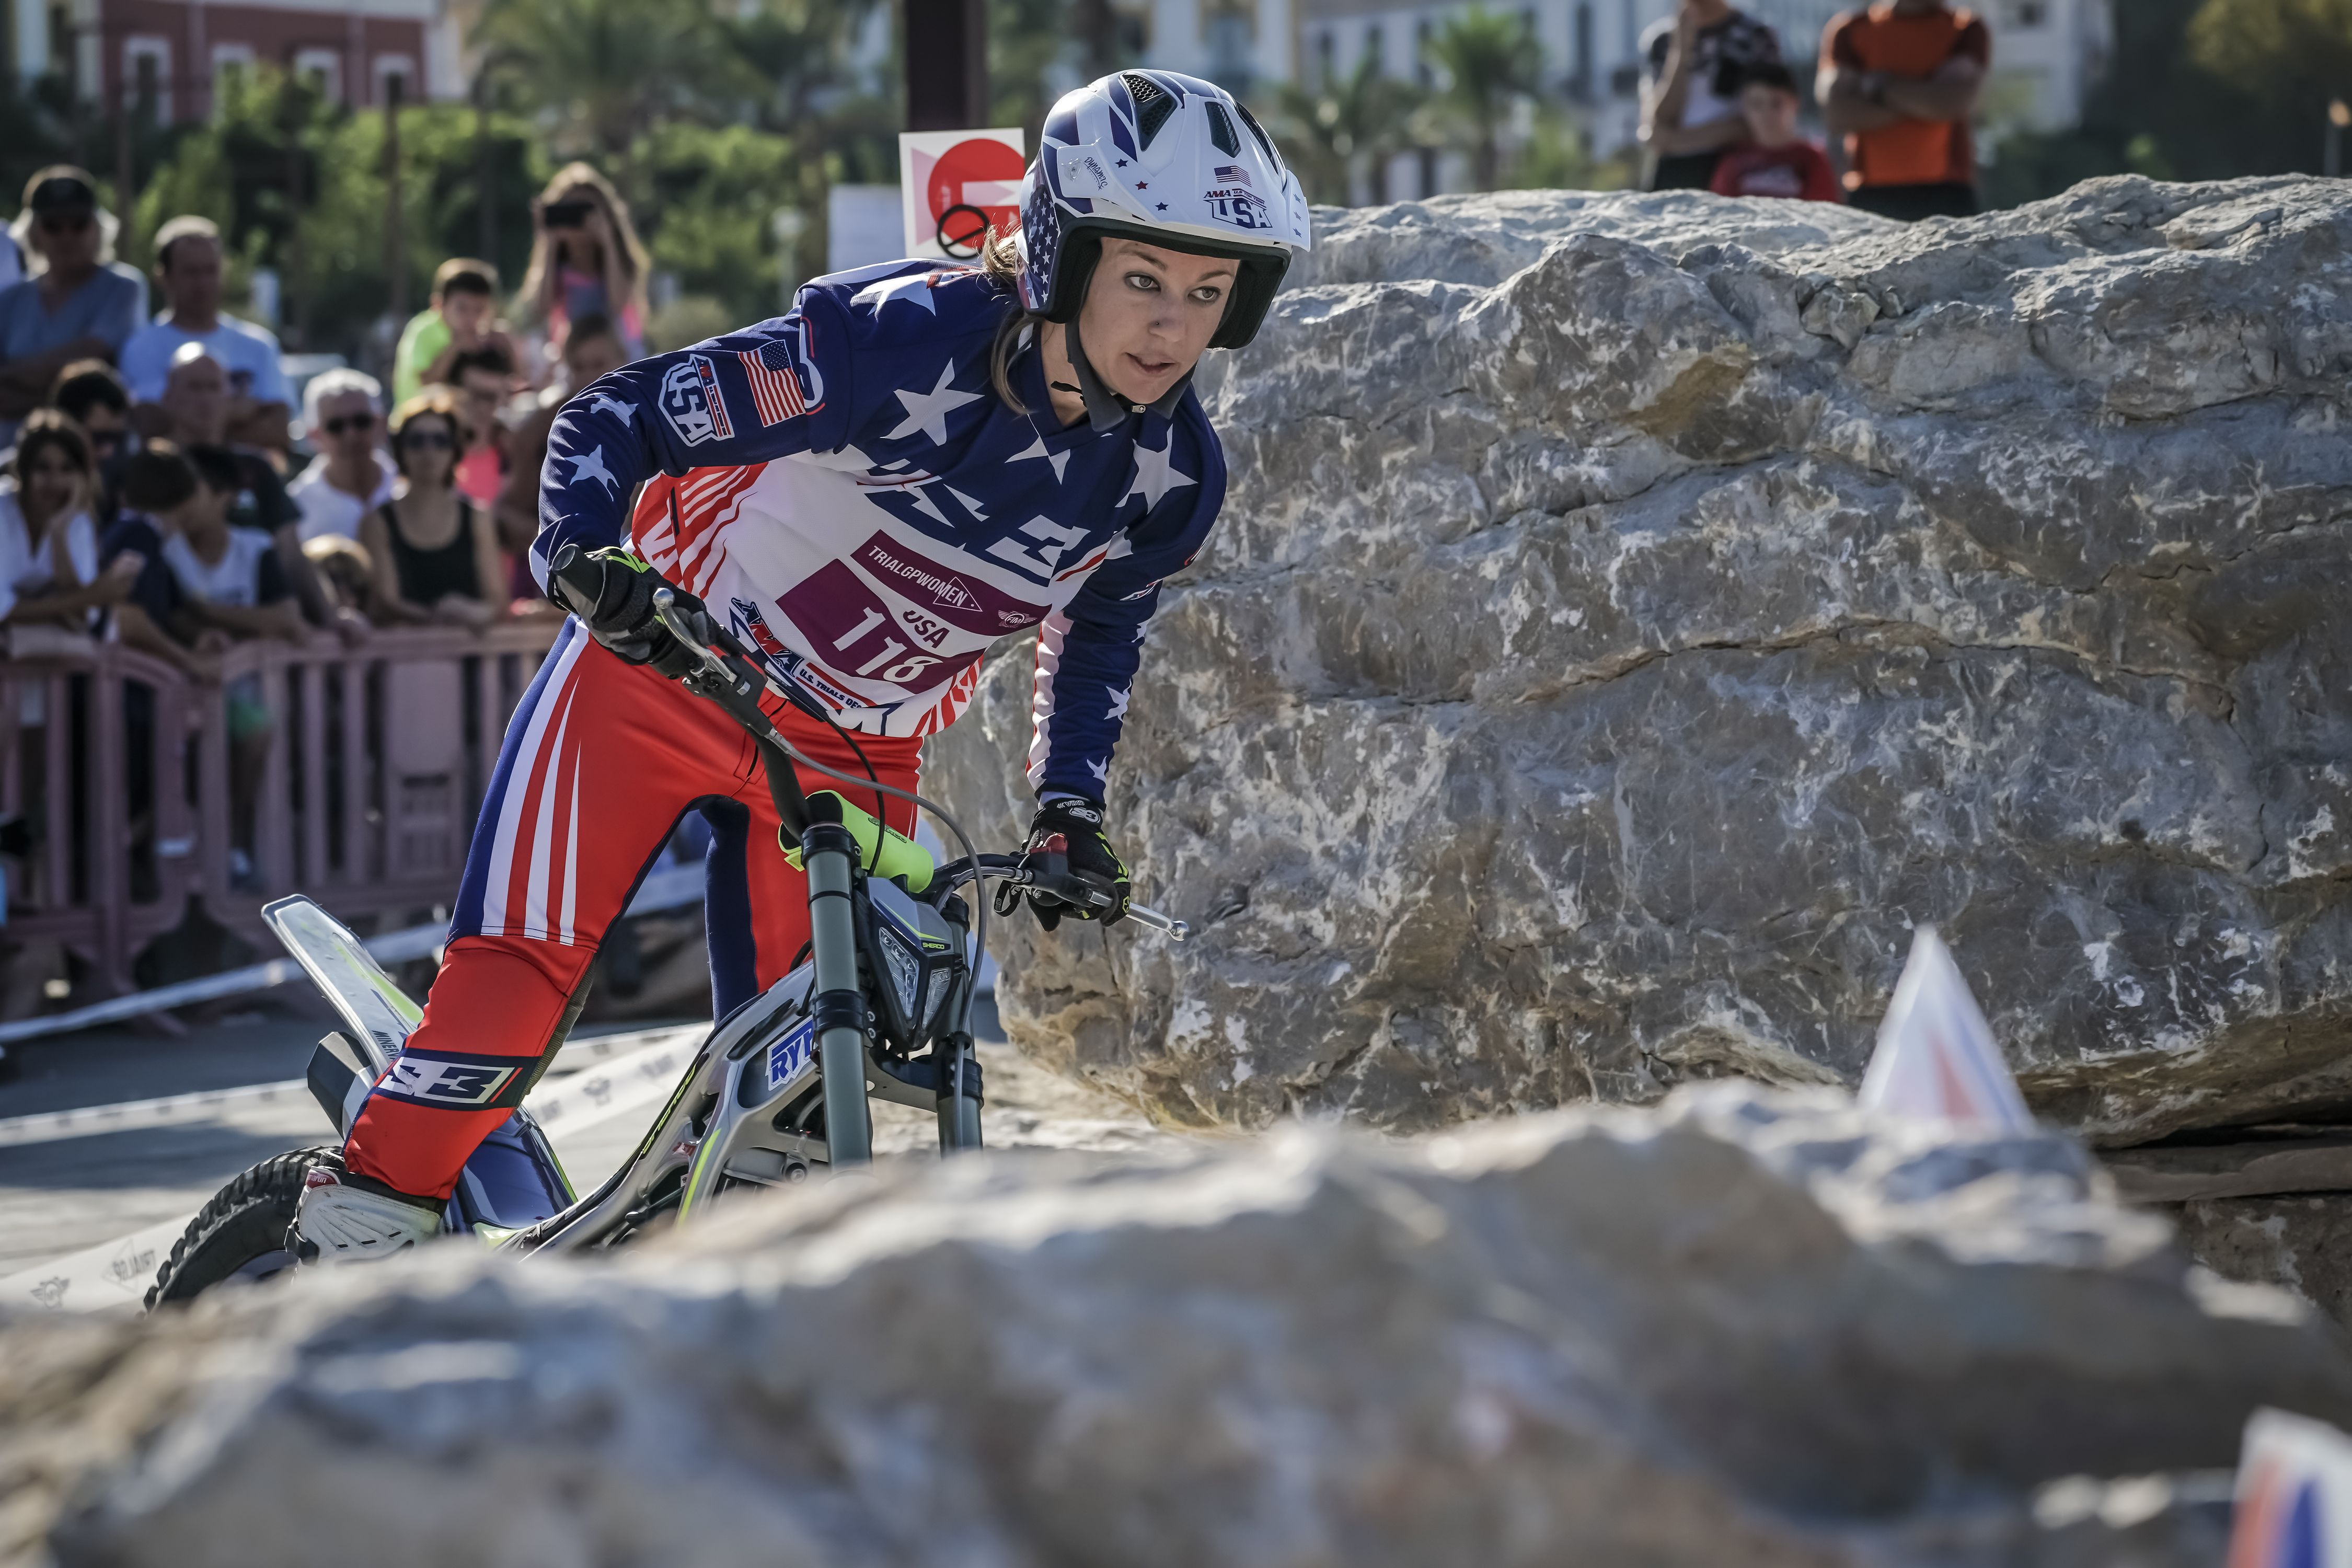 FIM Women's Trial des Nations